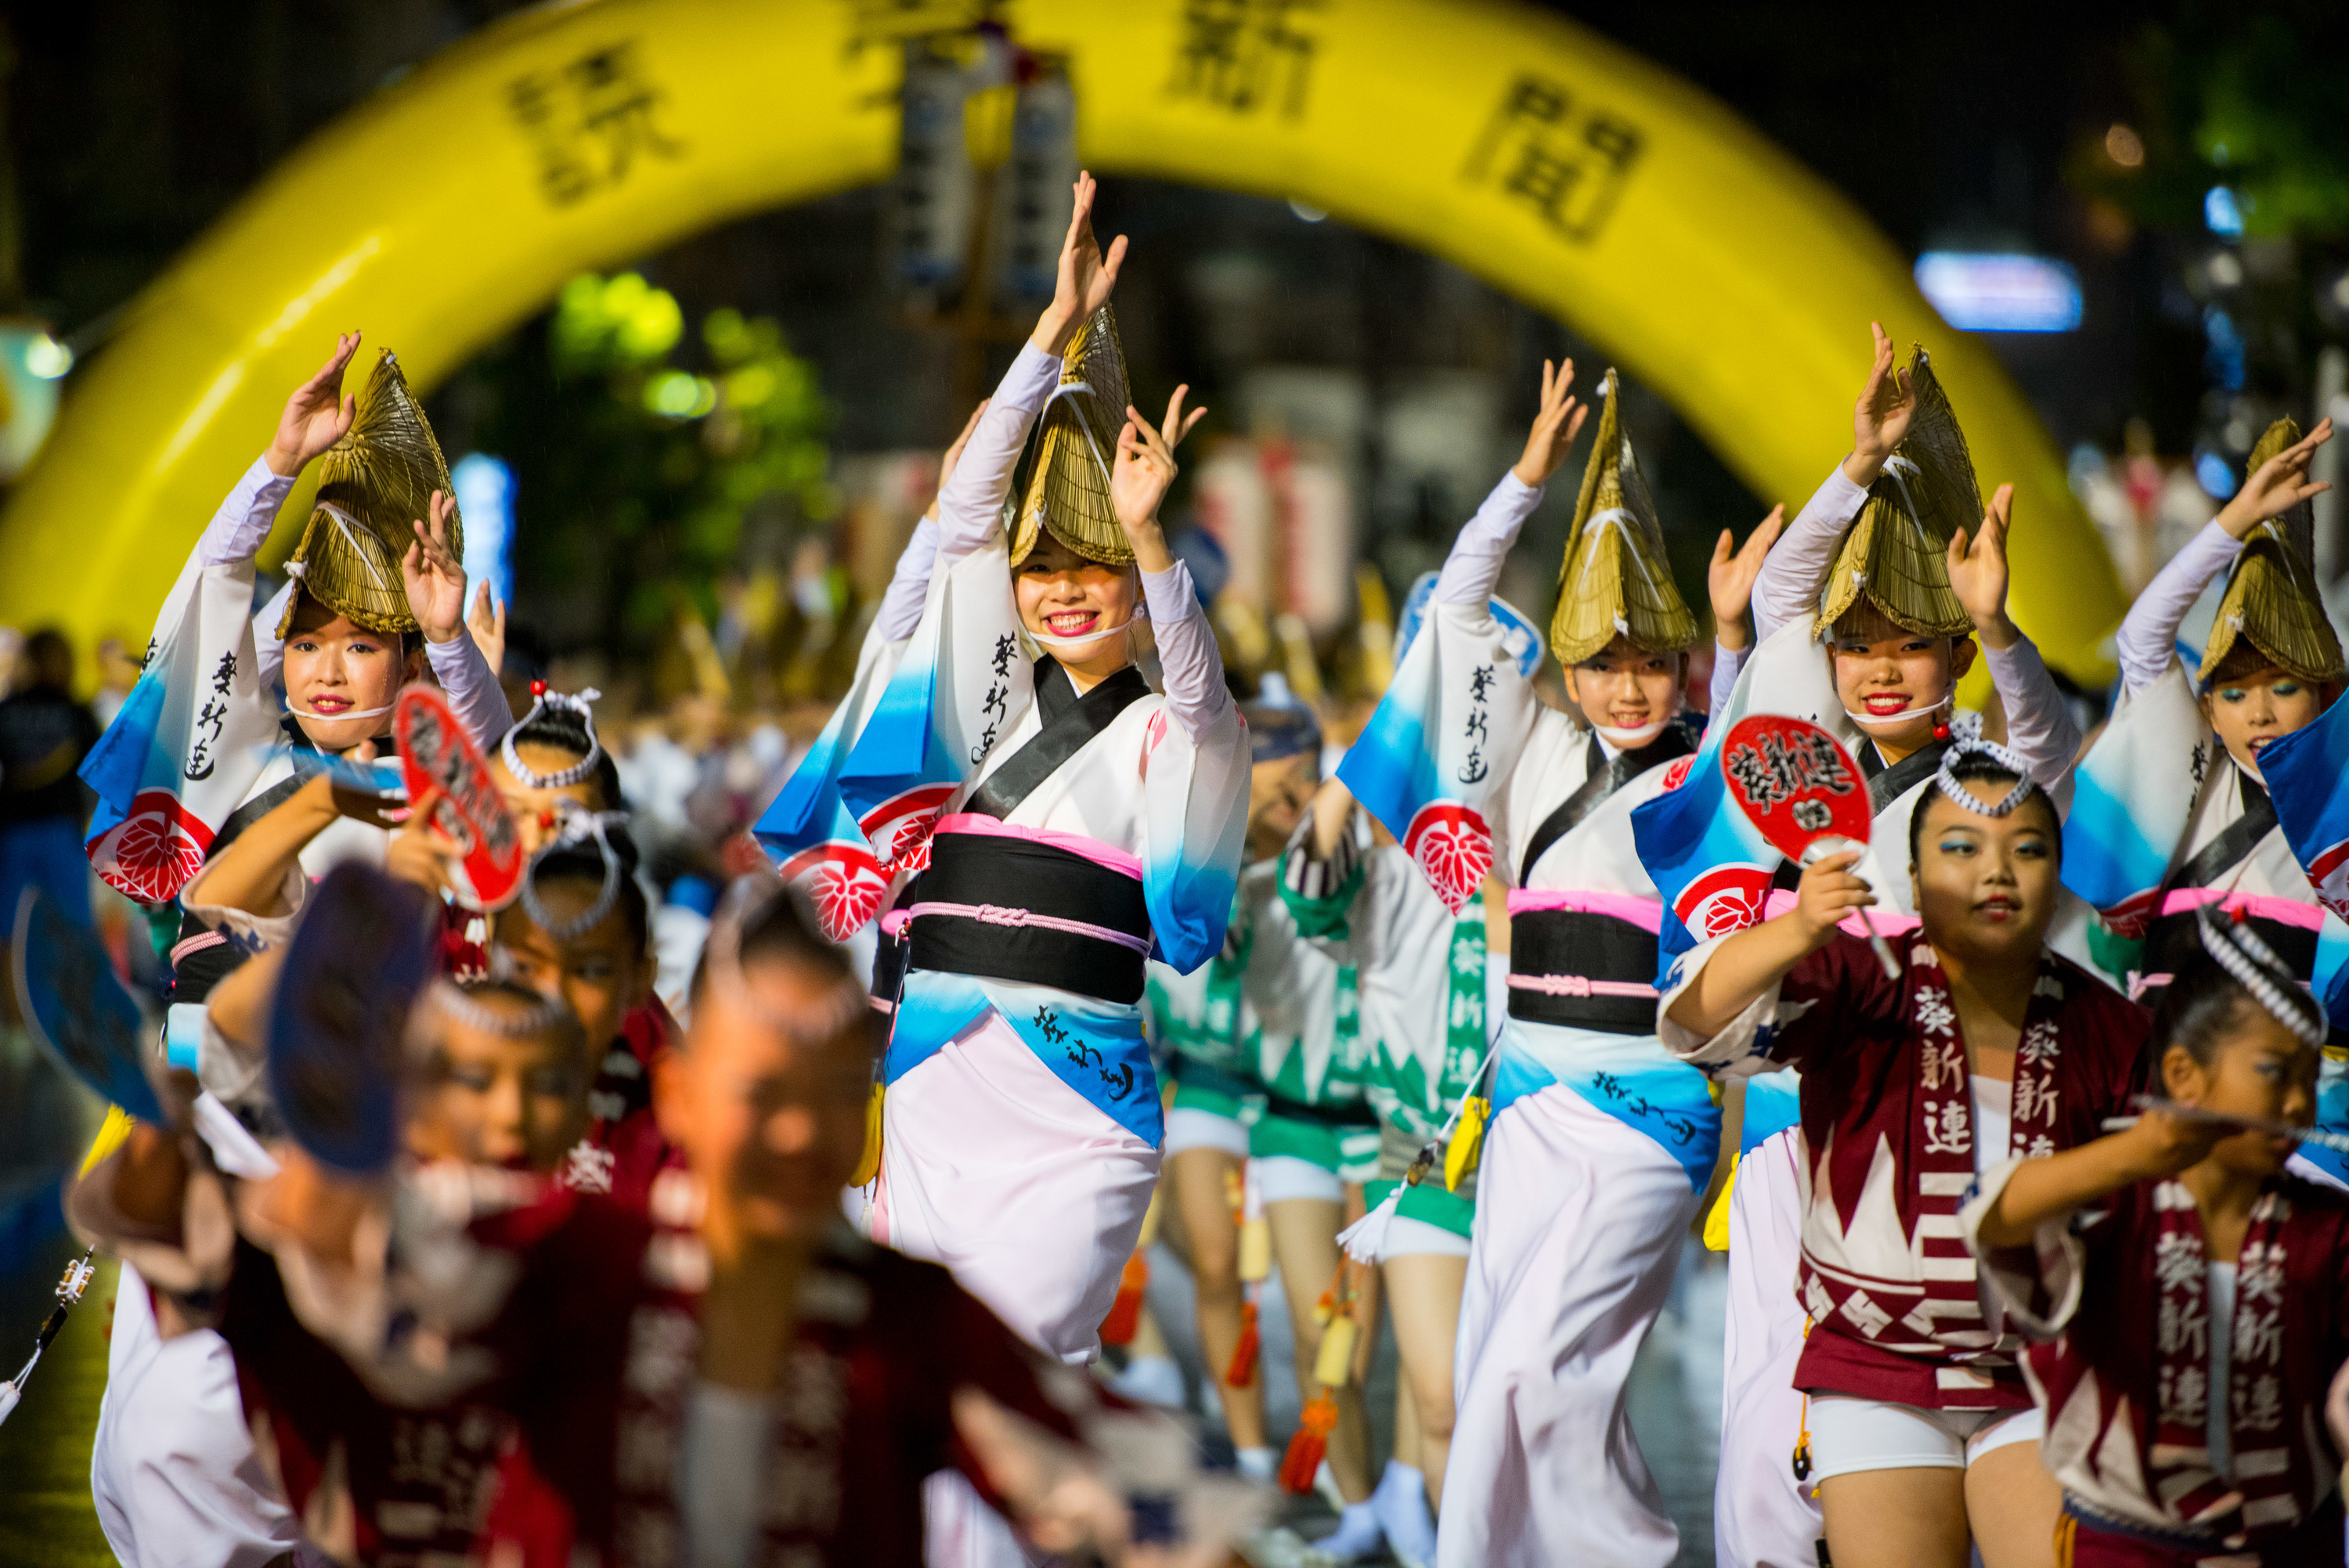 Go dancing at these six traditional Japanese festivals this weekend